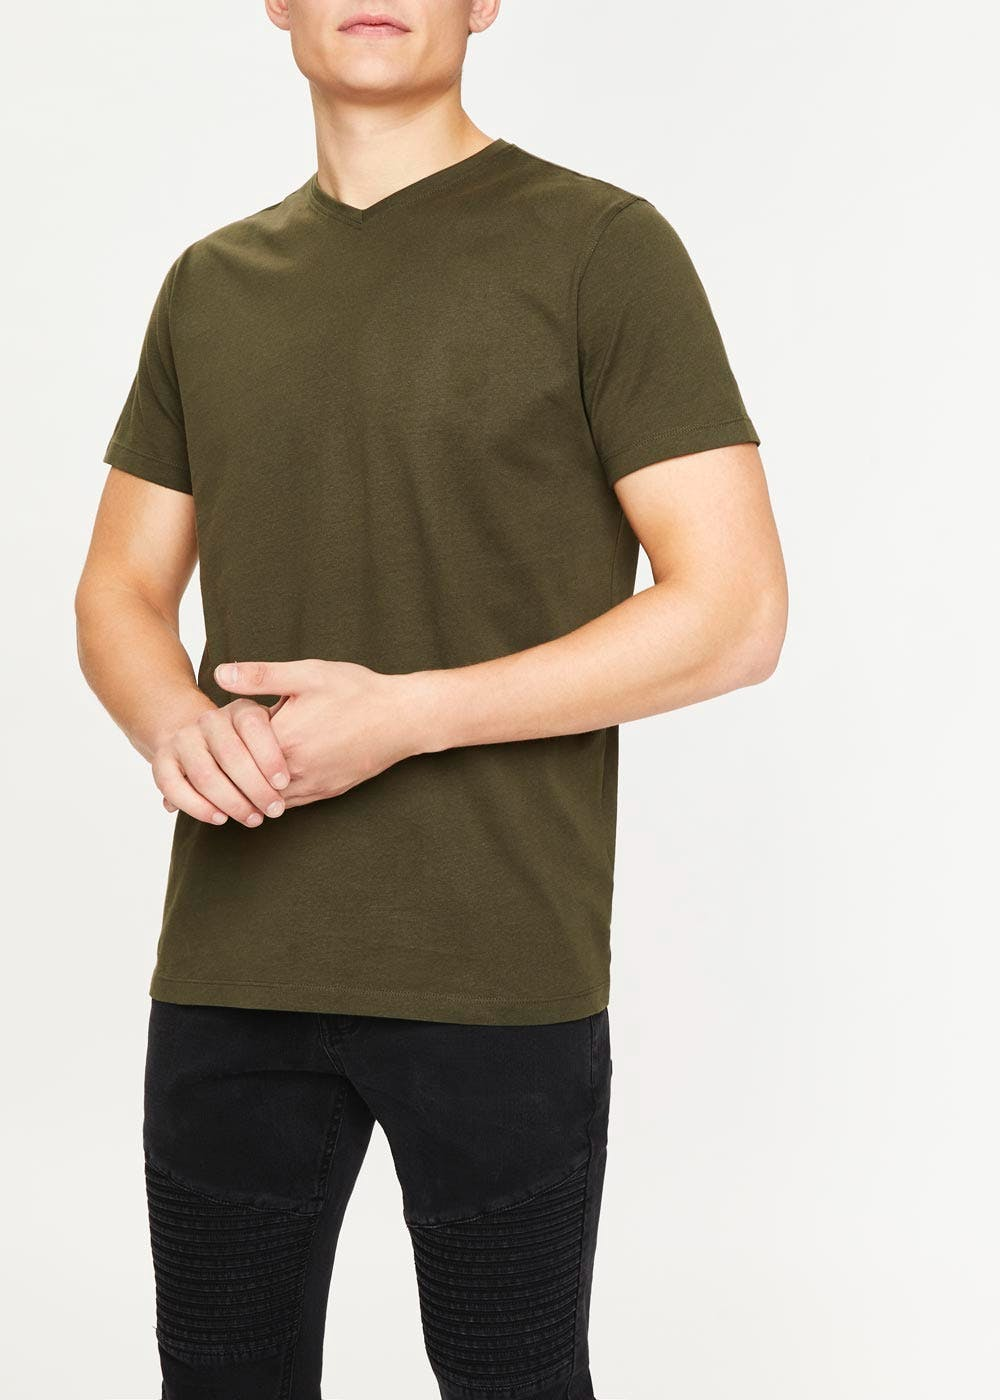 low priced 302ce 91d6d Basic V-Neck T-Shirt